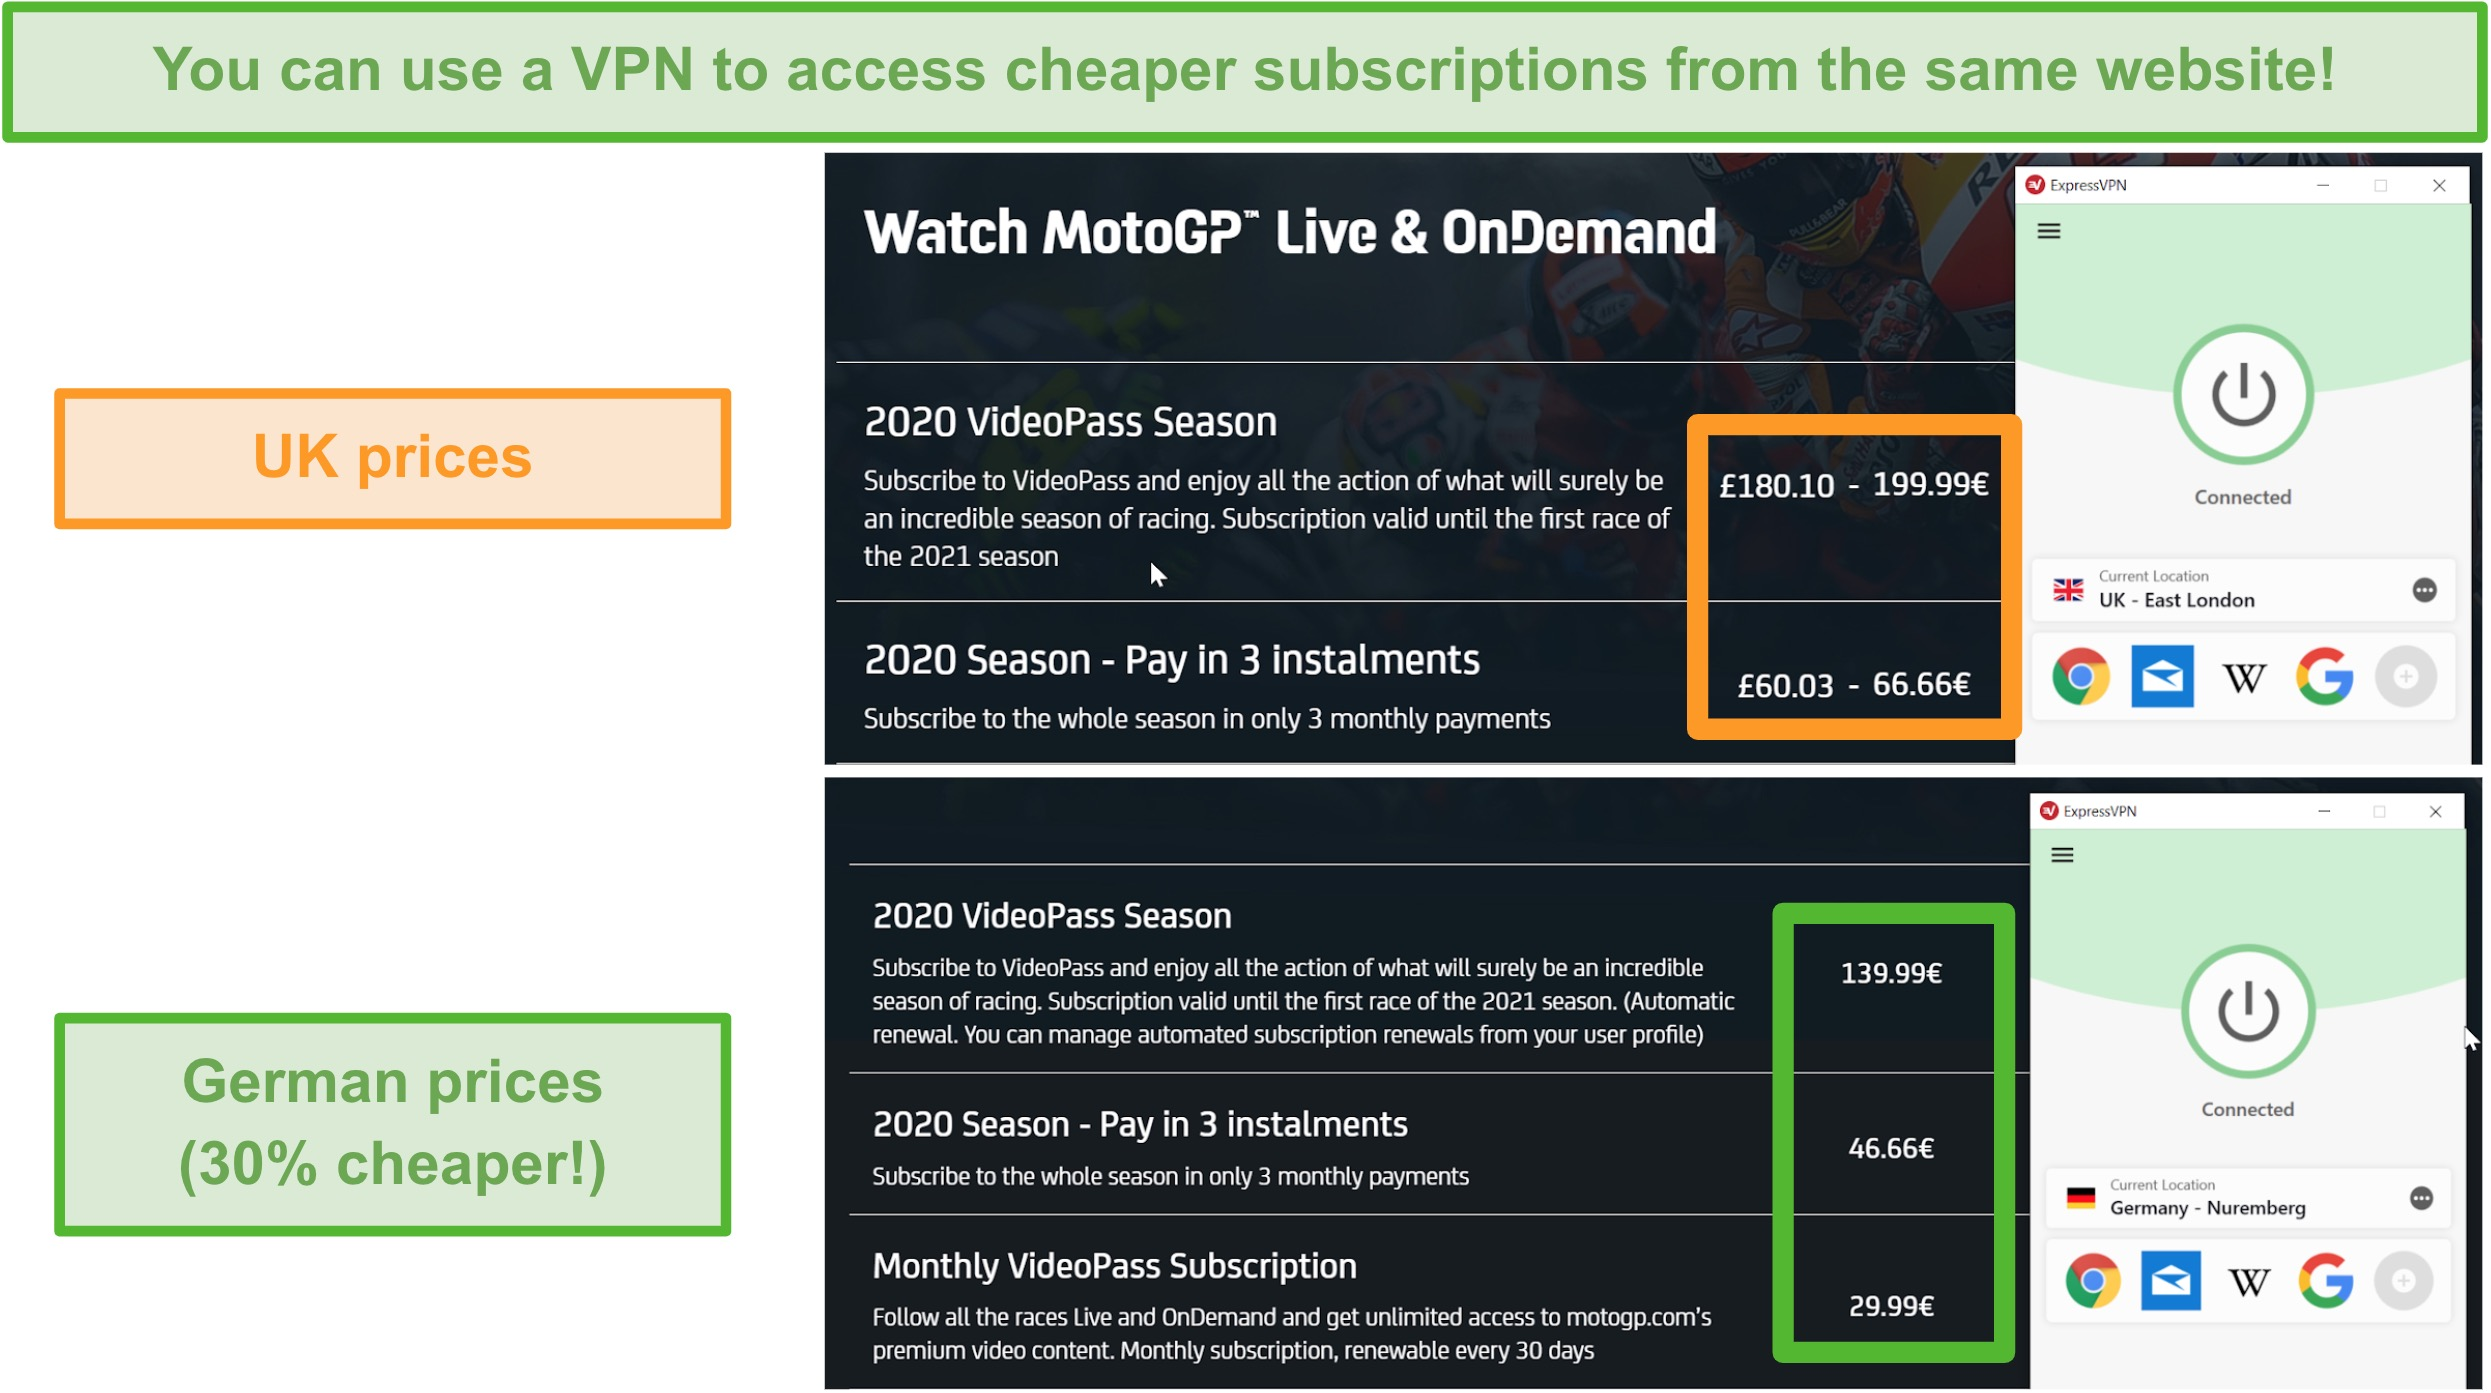 Screenshot of ExpressVPN connected to a UK server and then connecting to a German server and visiting the MotoGP VideoPass website where the price is 30% cheaper.